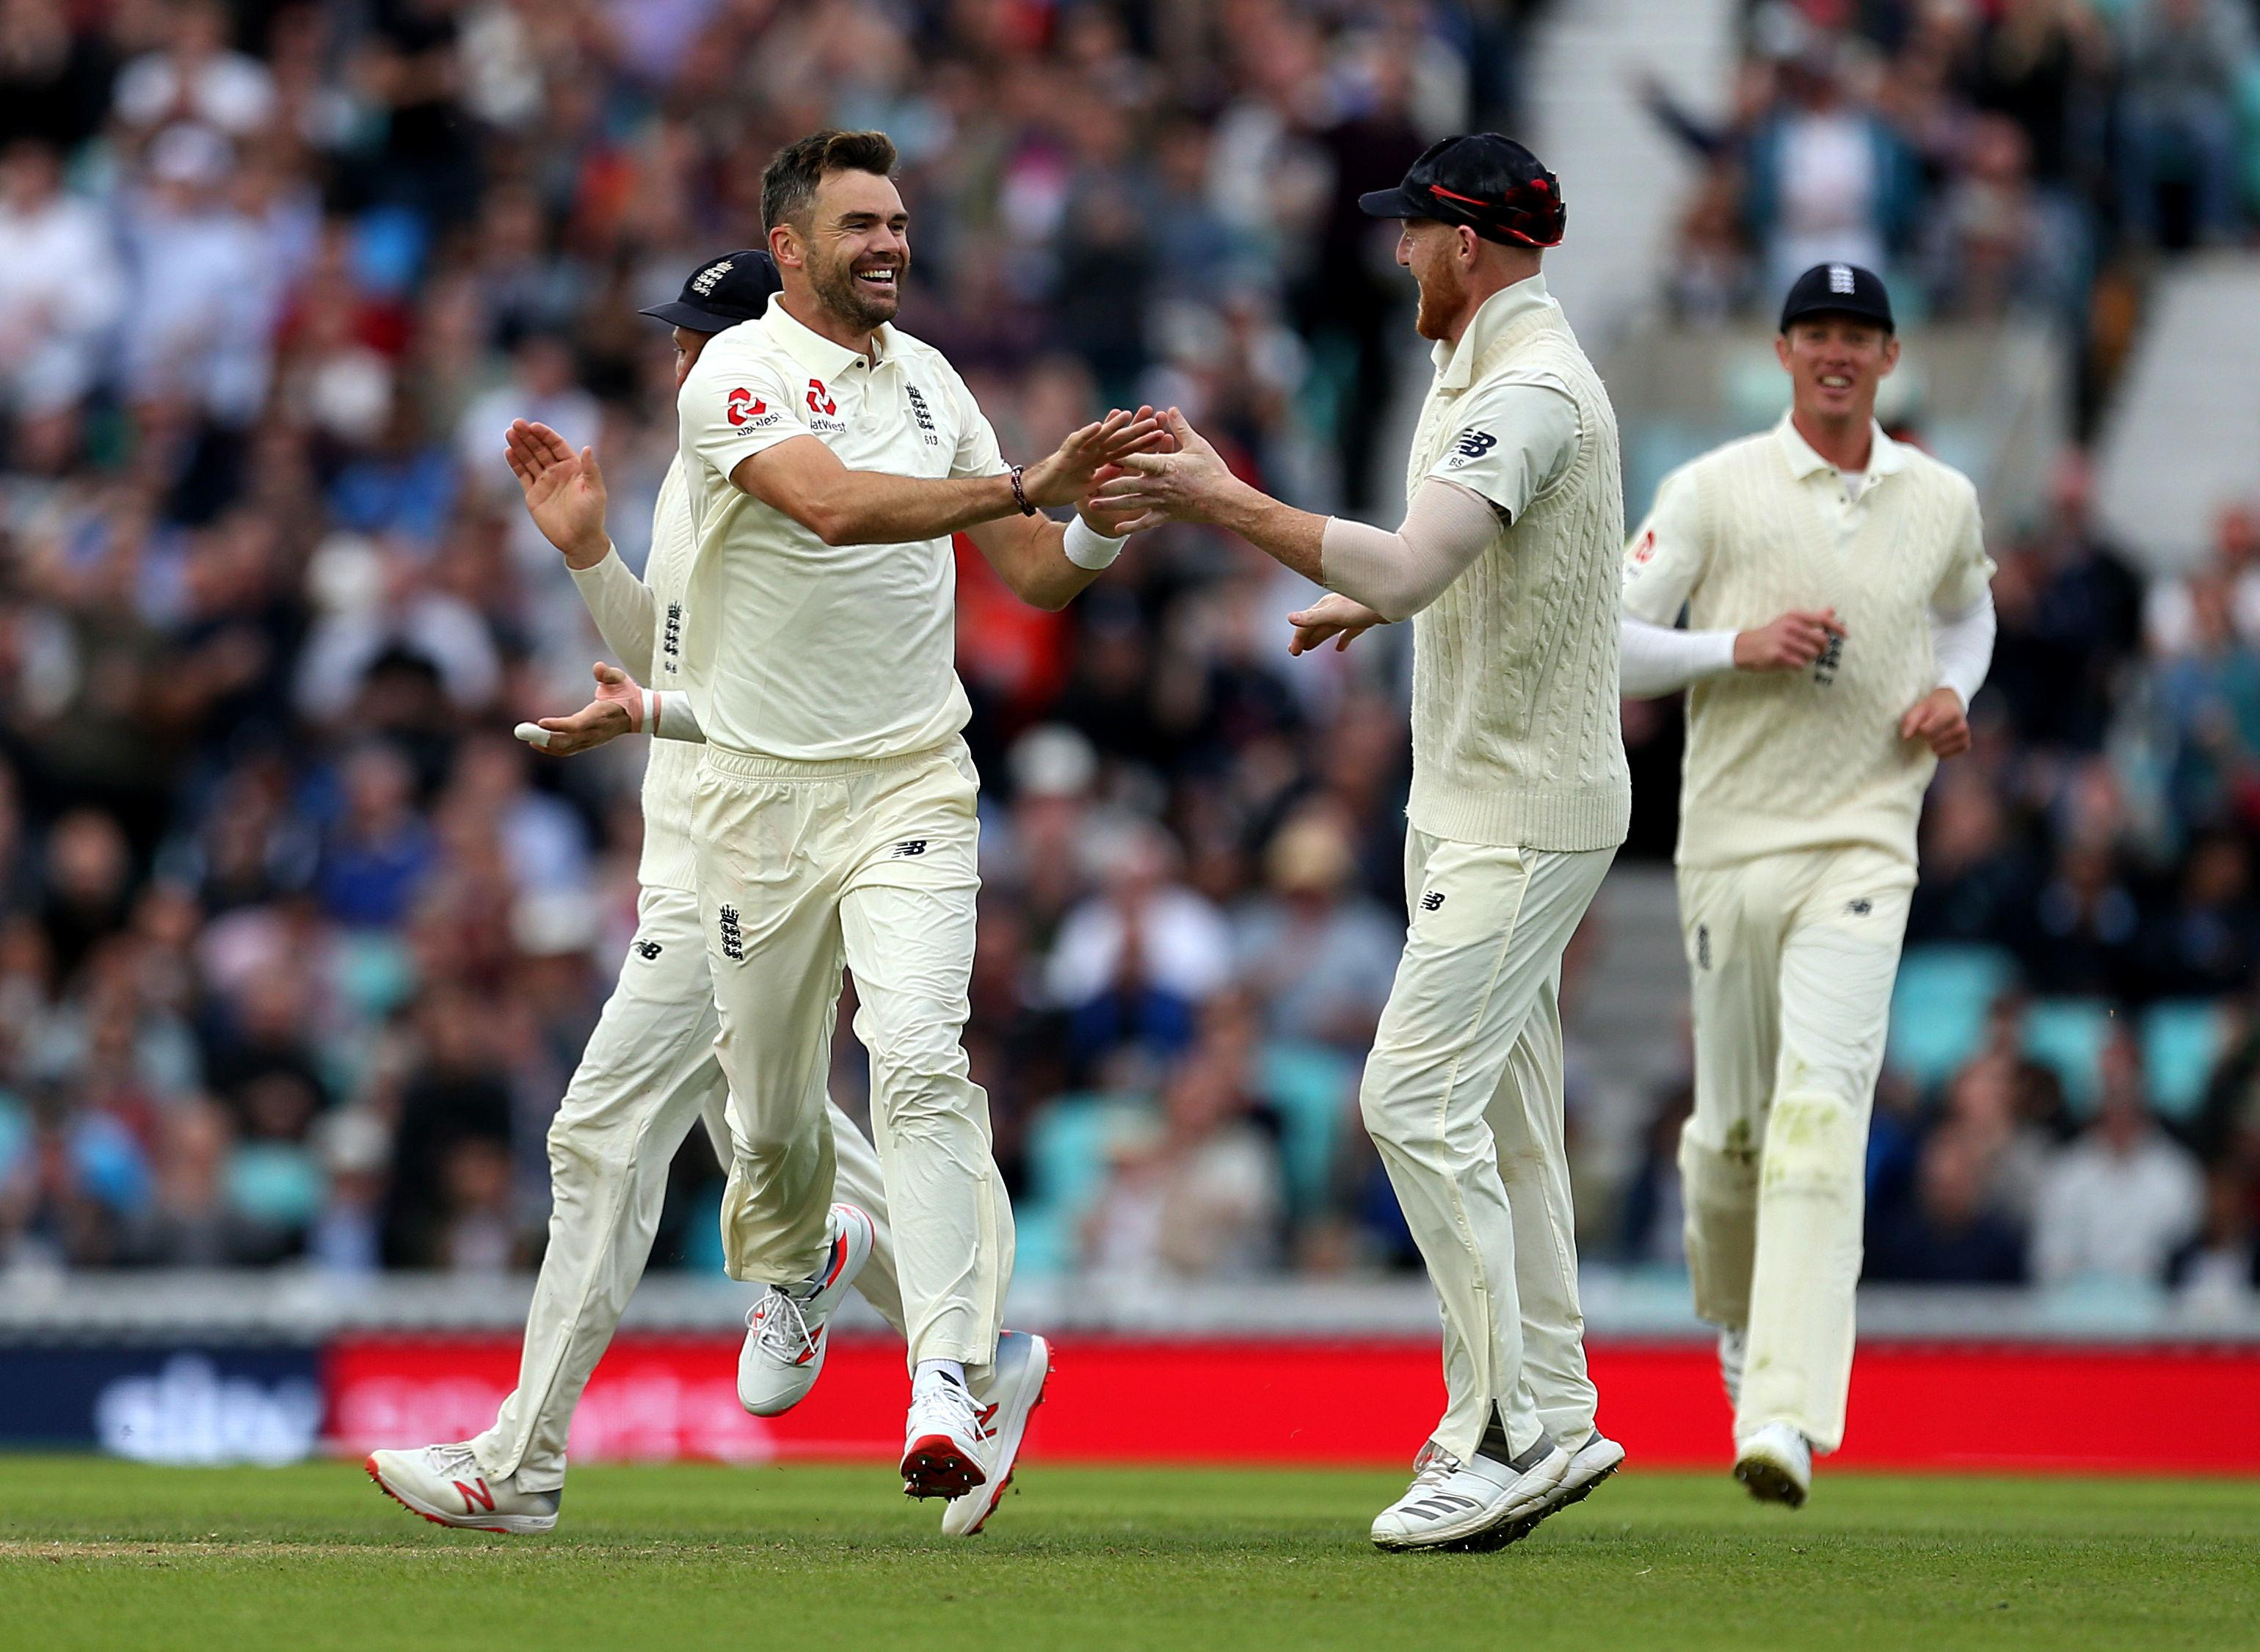 James Anderson celebrates the wicket of India's Ajinkya Rahane after caught by Alastair Cook.